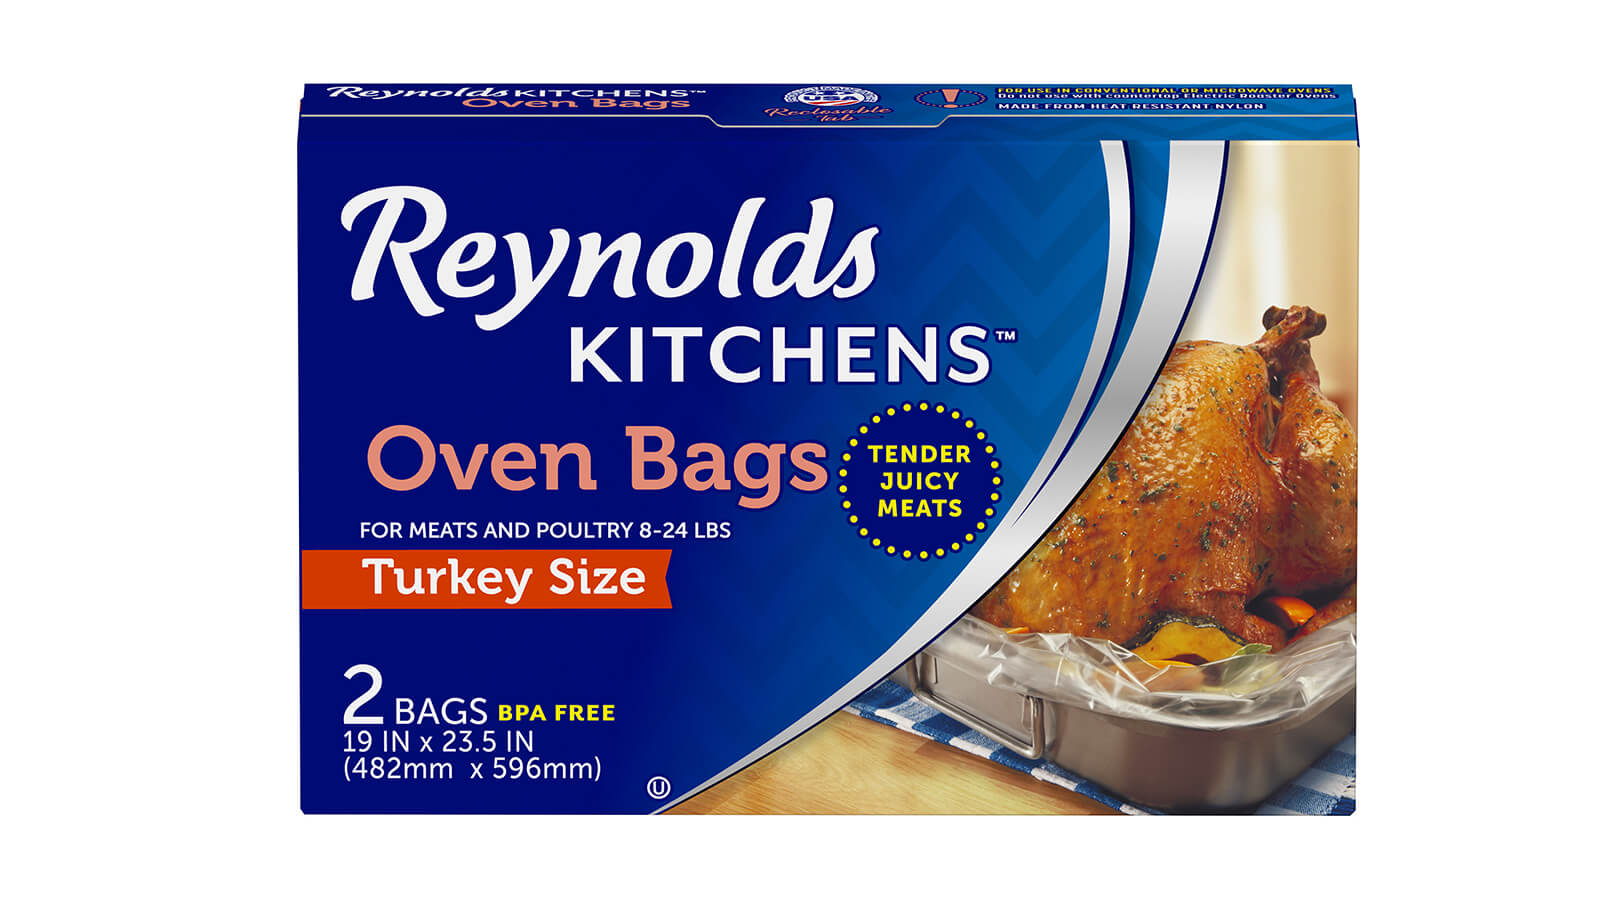 Reynolds Turkey Bag